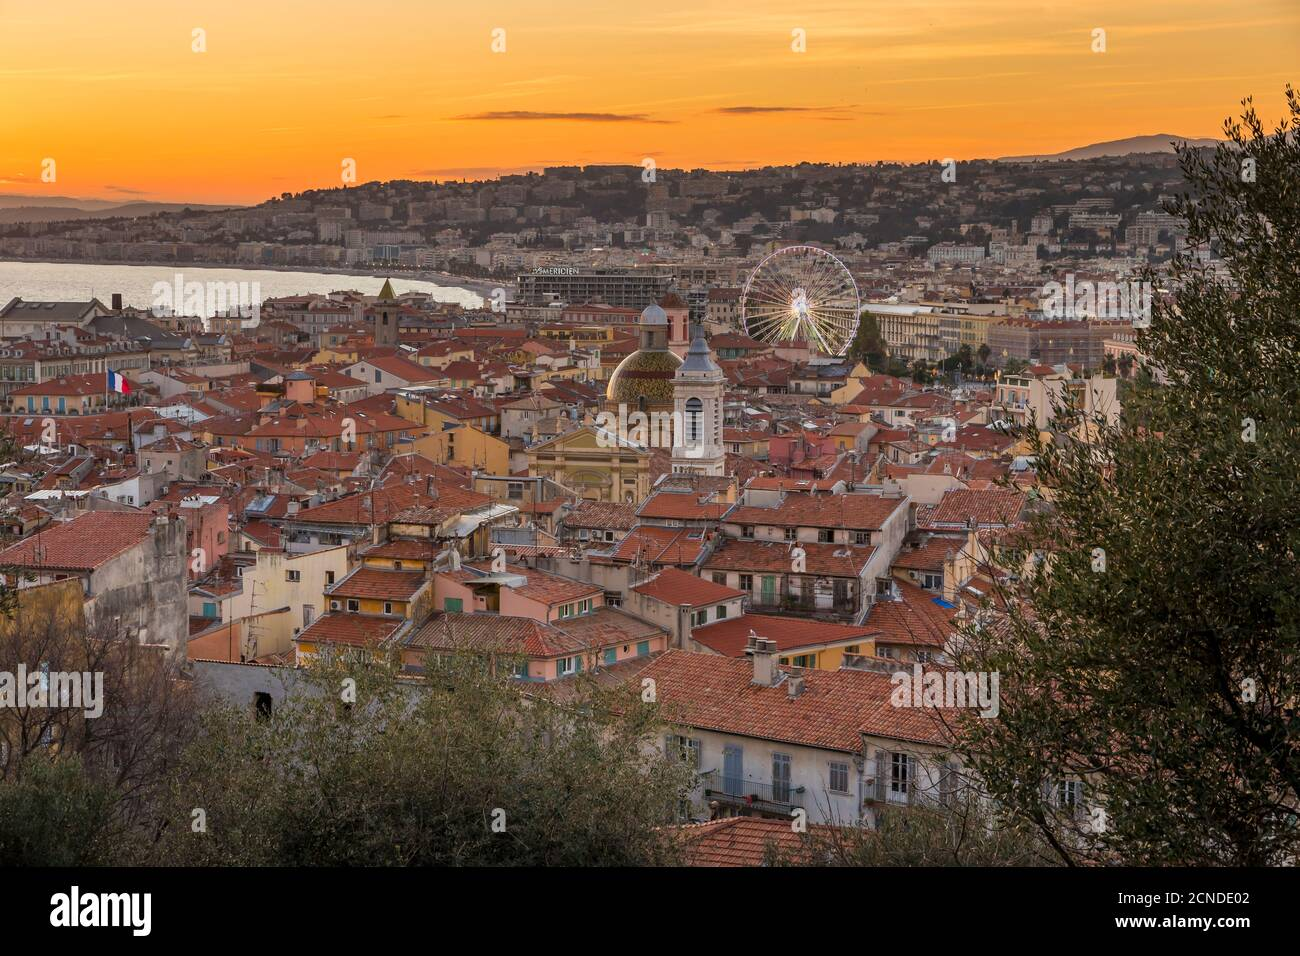 Elevated view from Castle Hill over the old town at sundown, Nice, Alpes Maritimes, Cote d'Azur, French Riviera, Provence, France, Mediterranean Stock Photo